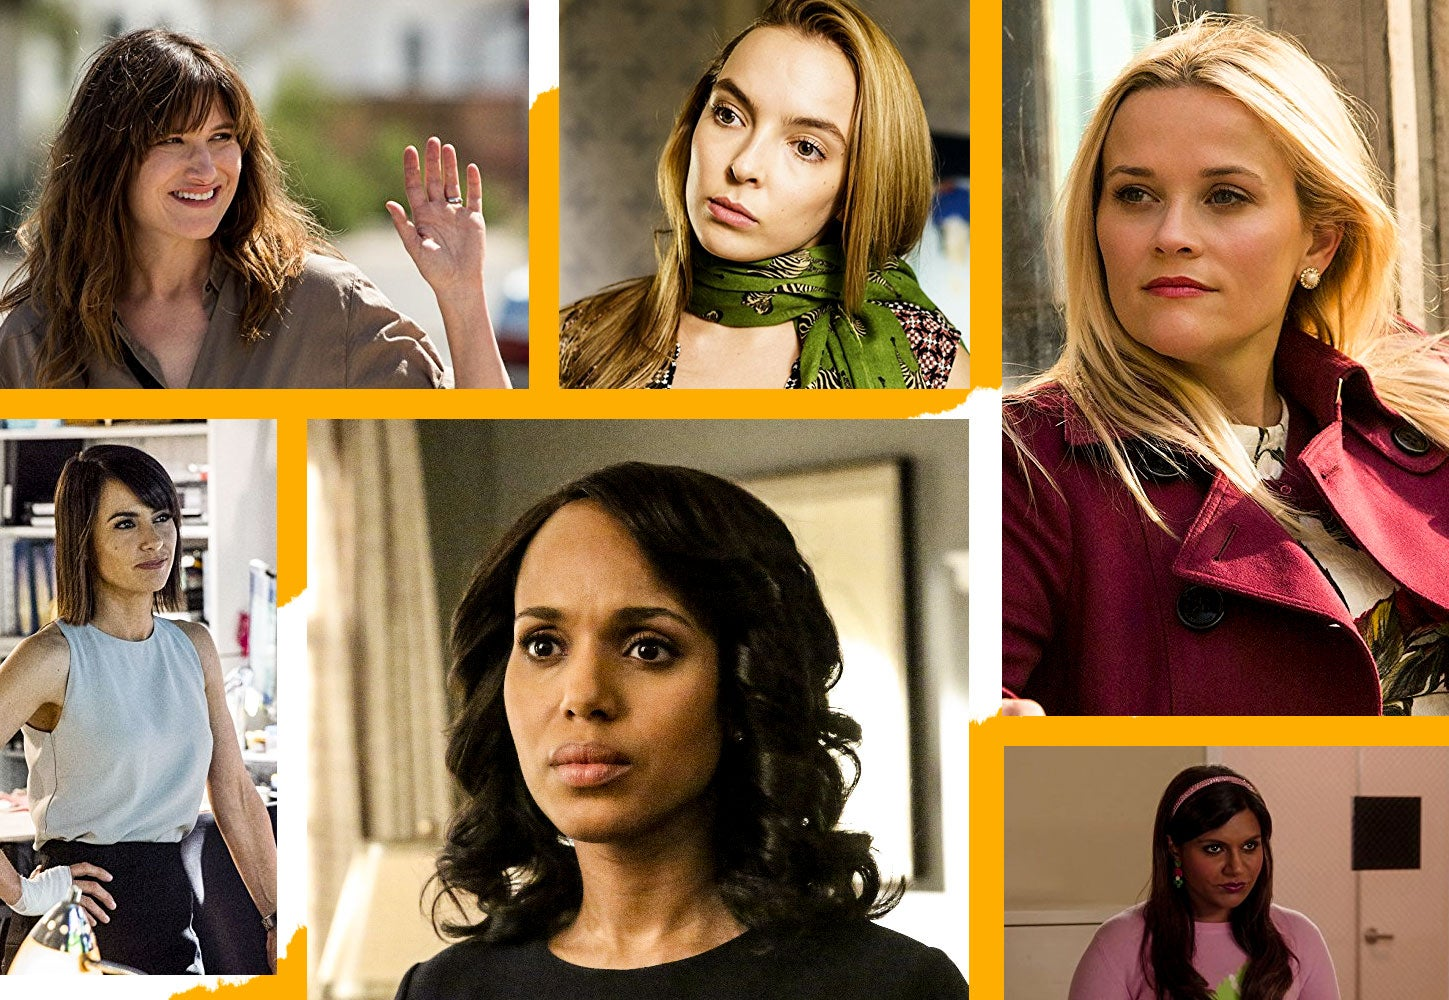 A collage of female characters from I Love Dick, Killing Eve, Big Little Lies, UnREAL, Scandal,  and The Mindy Project.